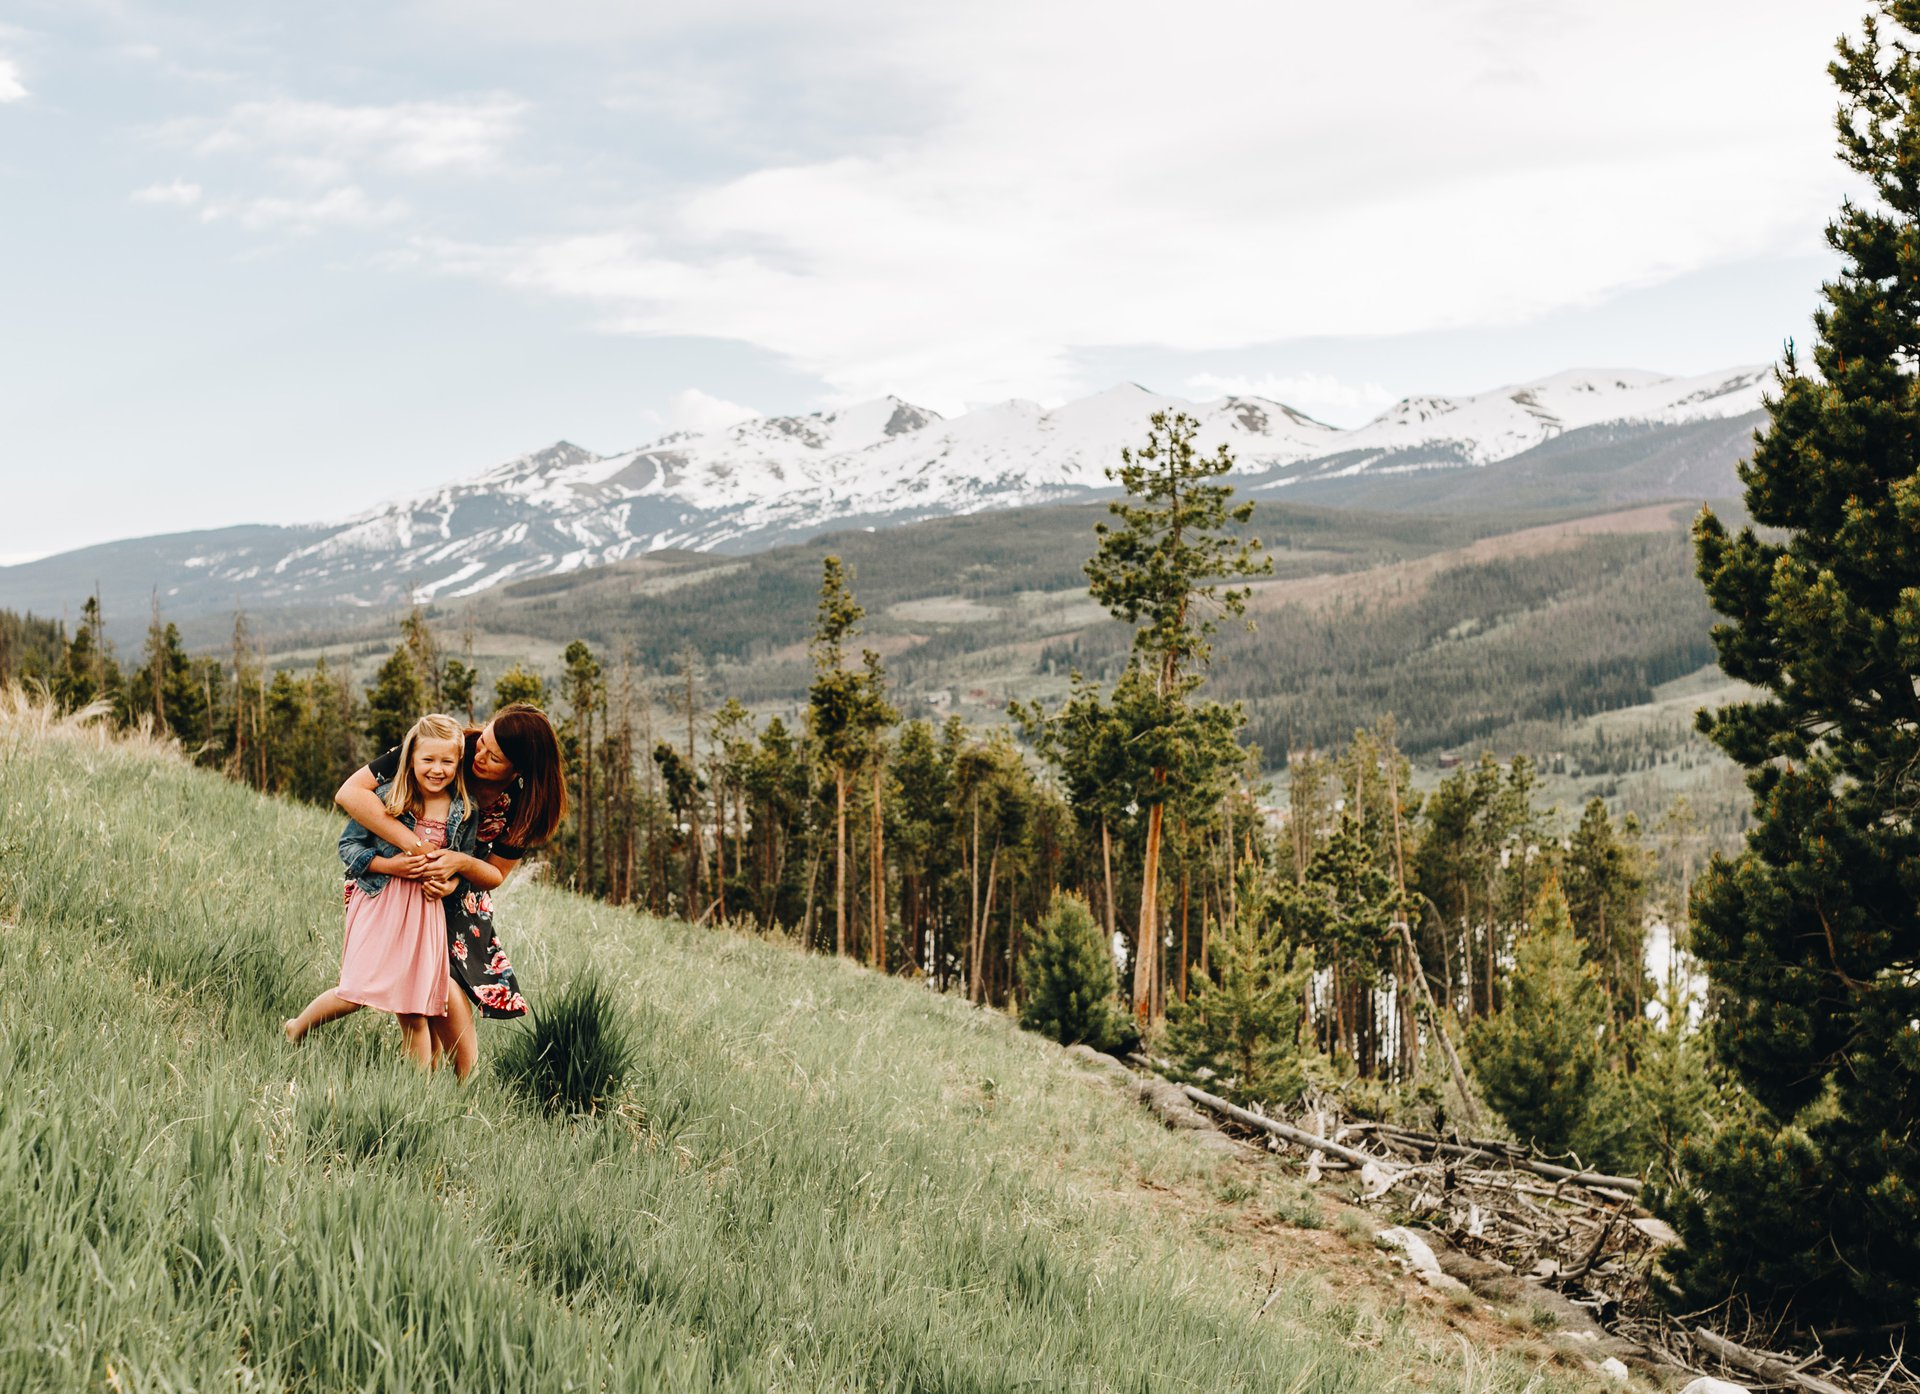 Breckenridge-United States-travel-story-Flytographer-9